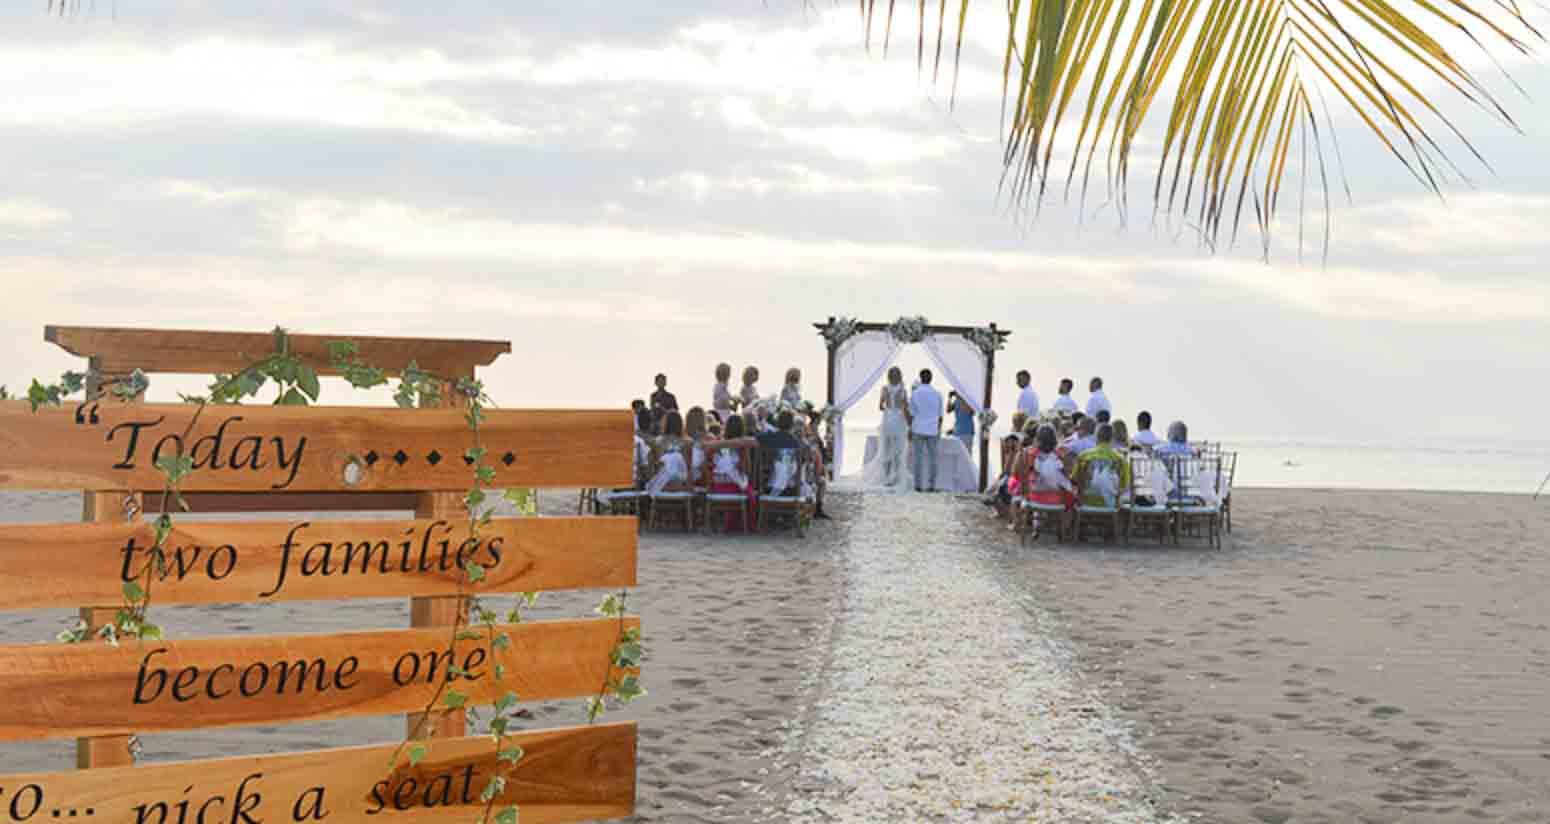 Ma Joly Sunset Beach Wedding Venue (30 - 100 Pax) Inclusive of Photograph & Videography + Makeup & Hair + Decorations-10